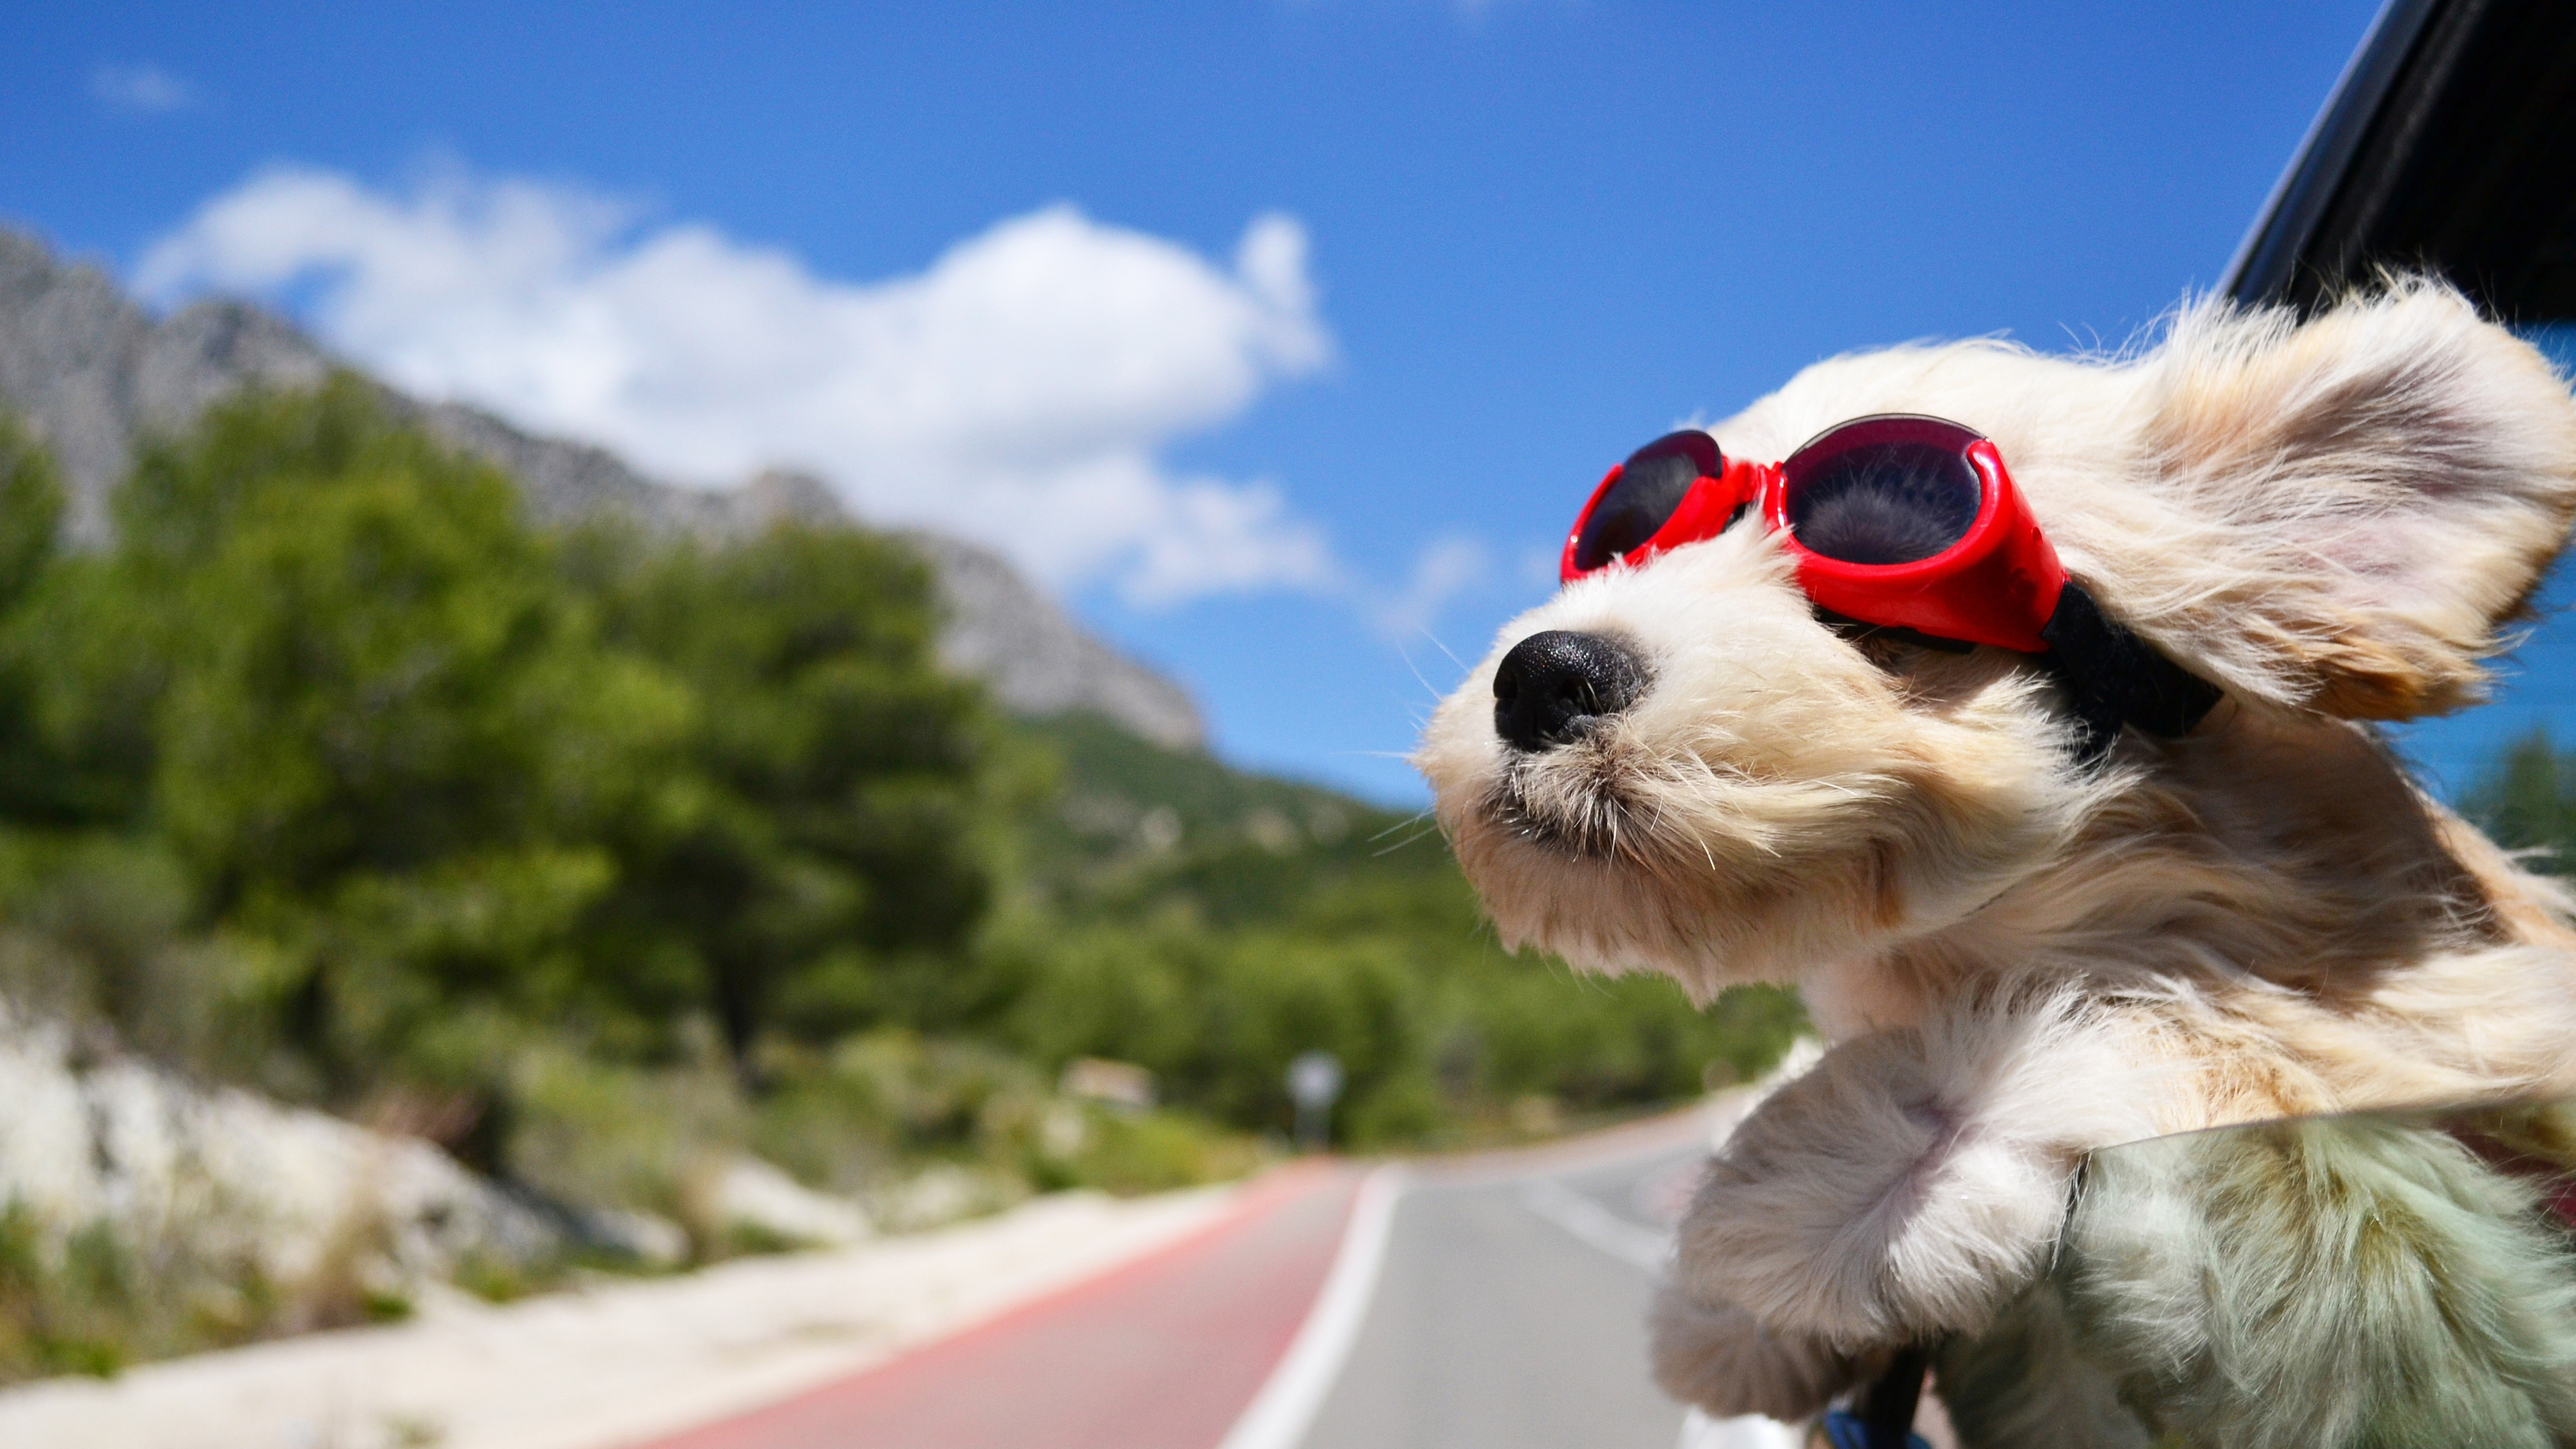 dog with glasses 4k 1542237729 - Dog With Glasses 4k - glasses wallpapers, funny wallpapers, dog wallpapers, animals wallpapers